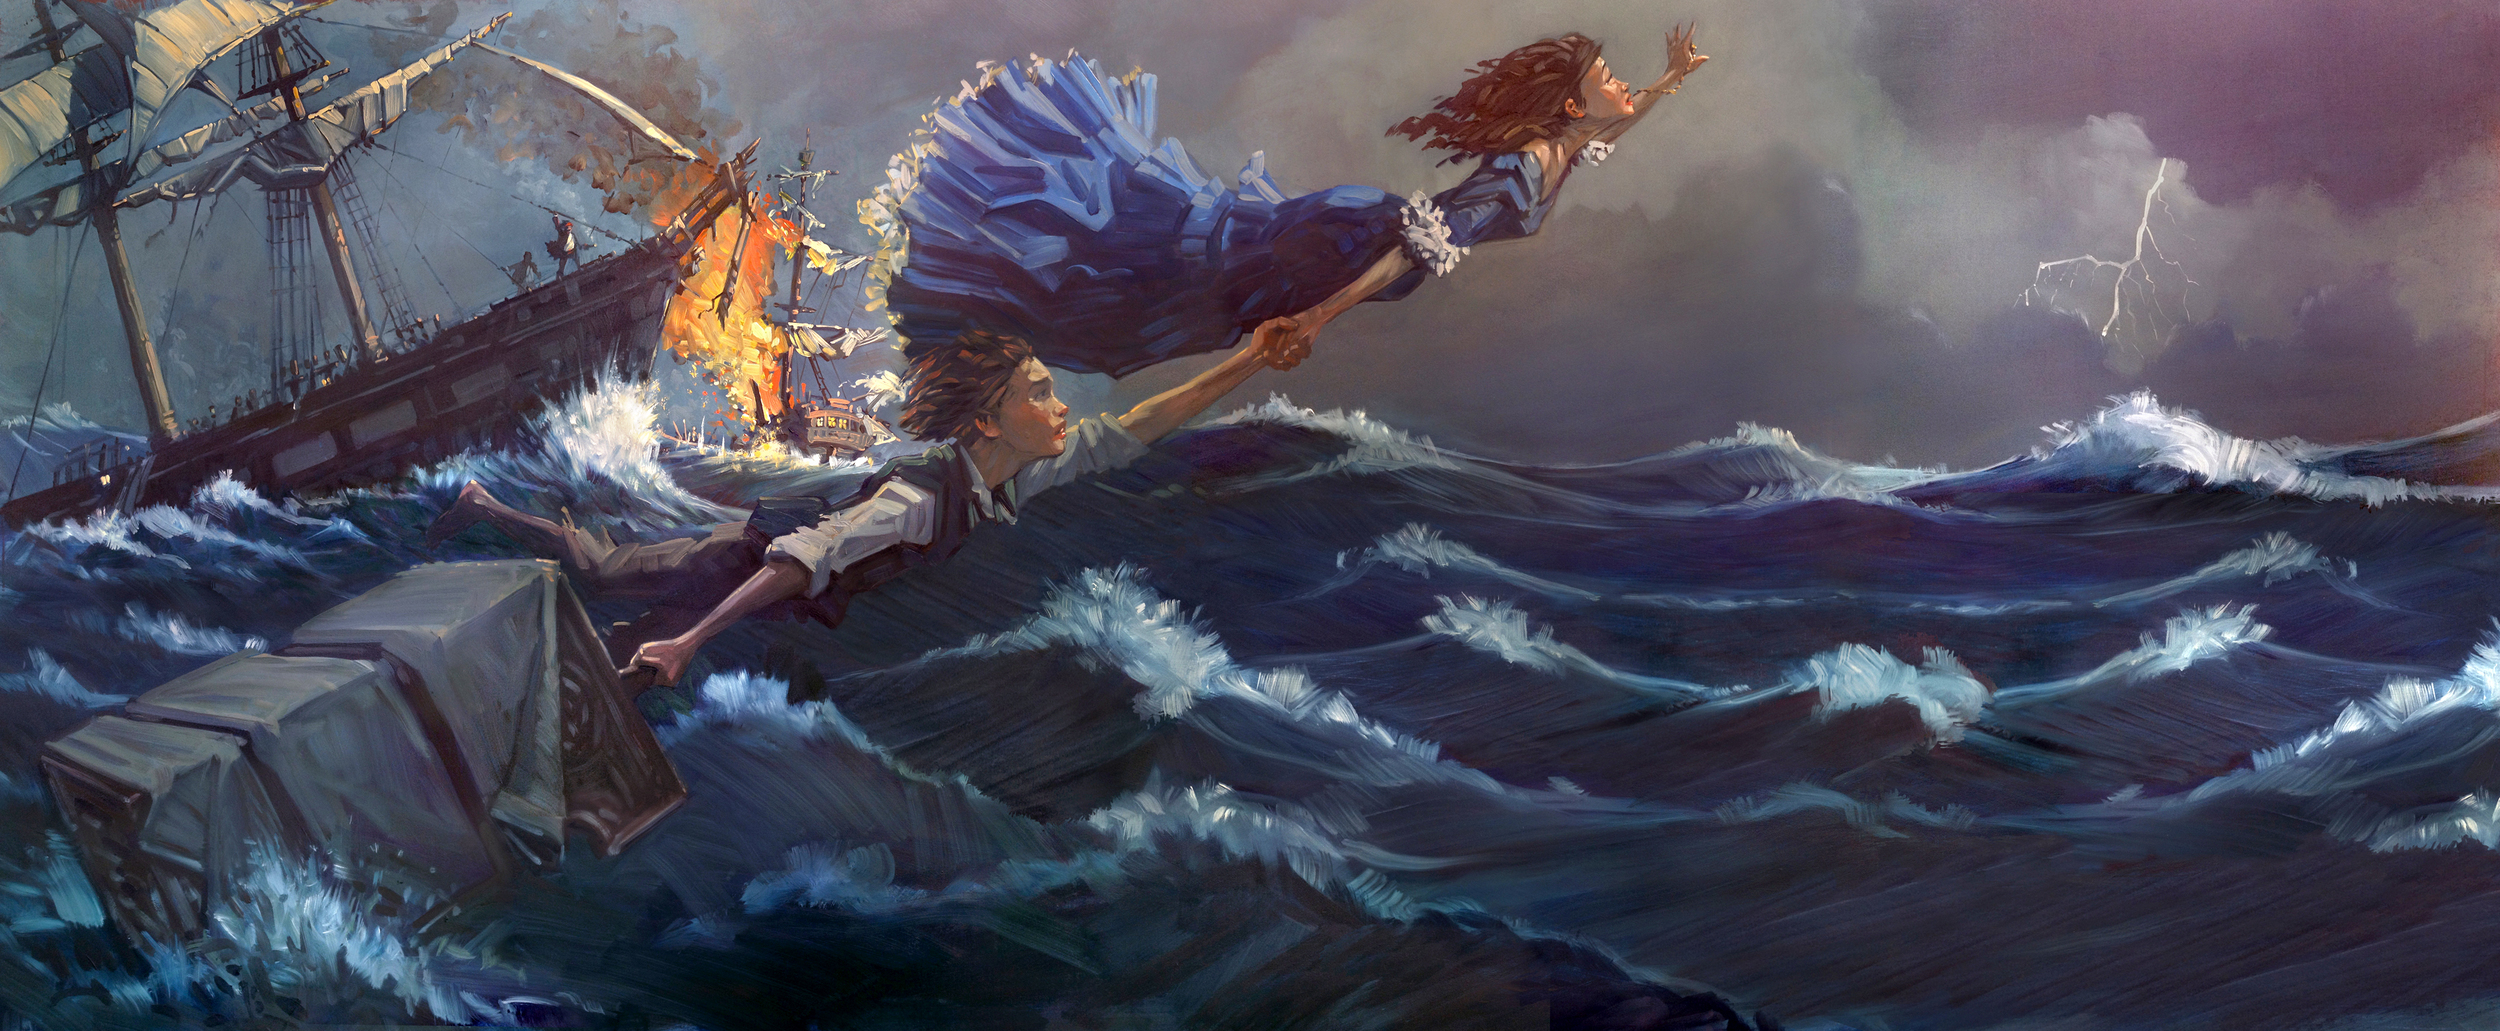 Escape   • Oil on Masonite. Peter gets help, before he learns to fly. Whenever I paint in a realistic way, I use reference photos. The ship was from one source, the flames and waves from other photos. I photographed the models standing up, then altered their poses for the painting.